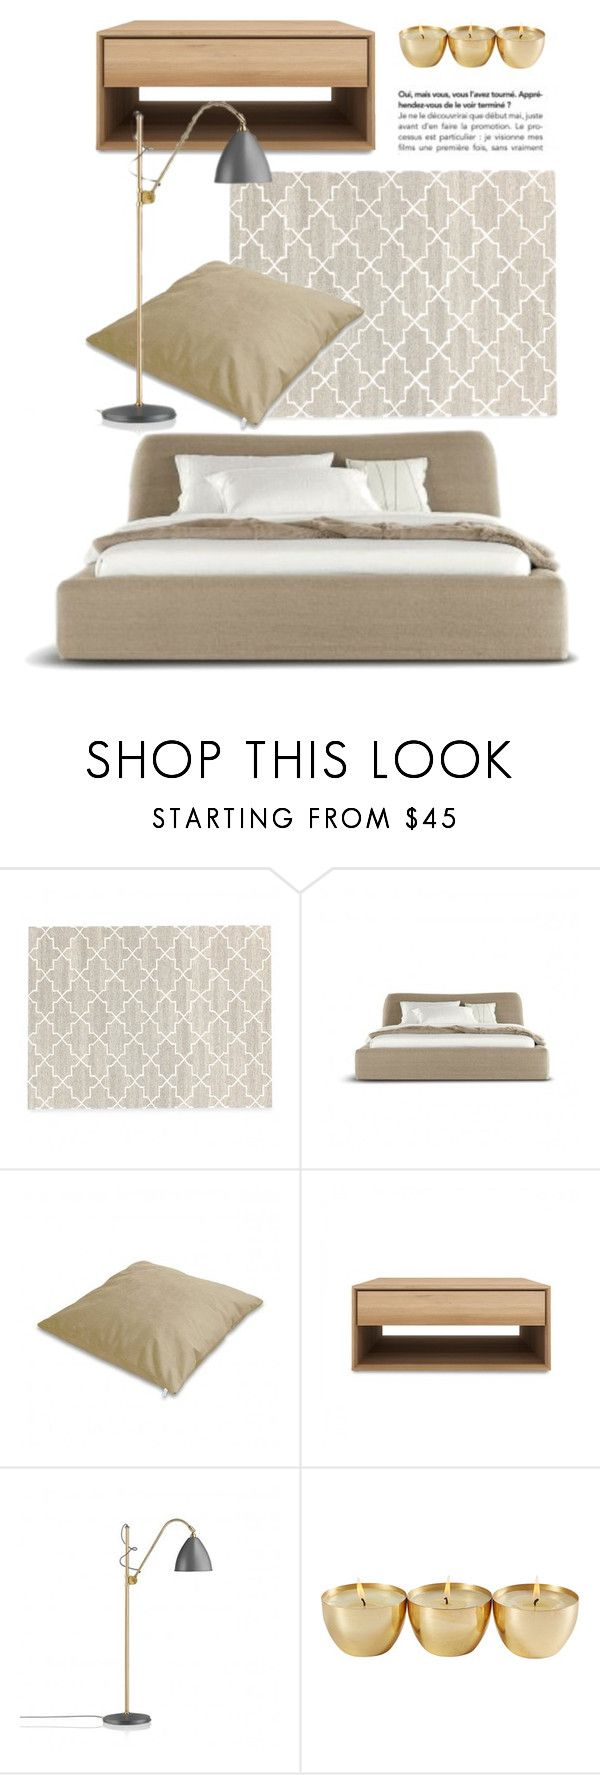 """""""Bedroom Decor"""" by lovethesign-eu ❤ liked on Polyvore featuring interior, interiors, interior design, home, home decor, interior decorating, Gubi, bedroom, Home and homeset"""